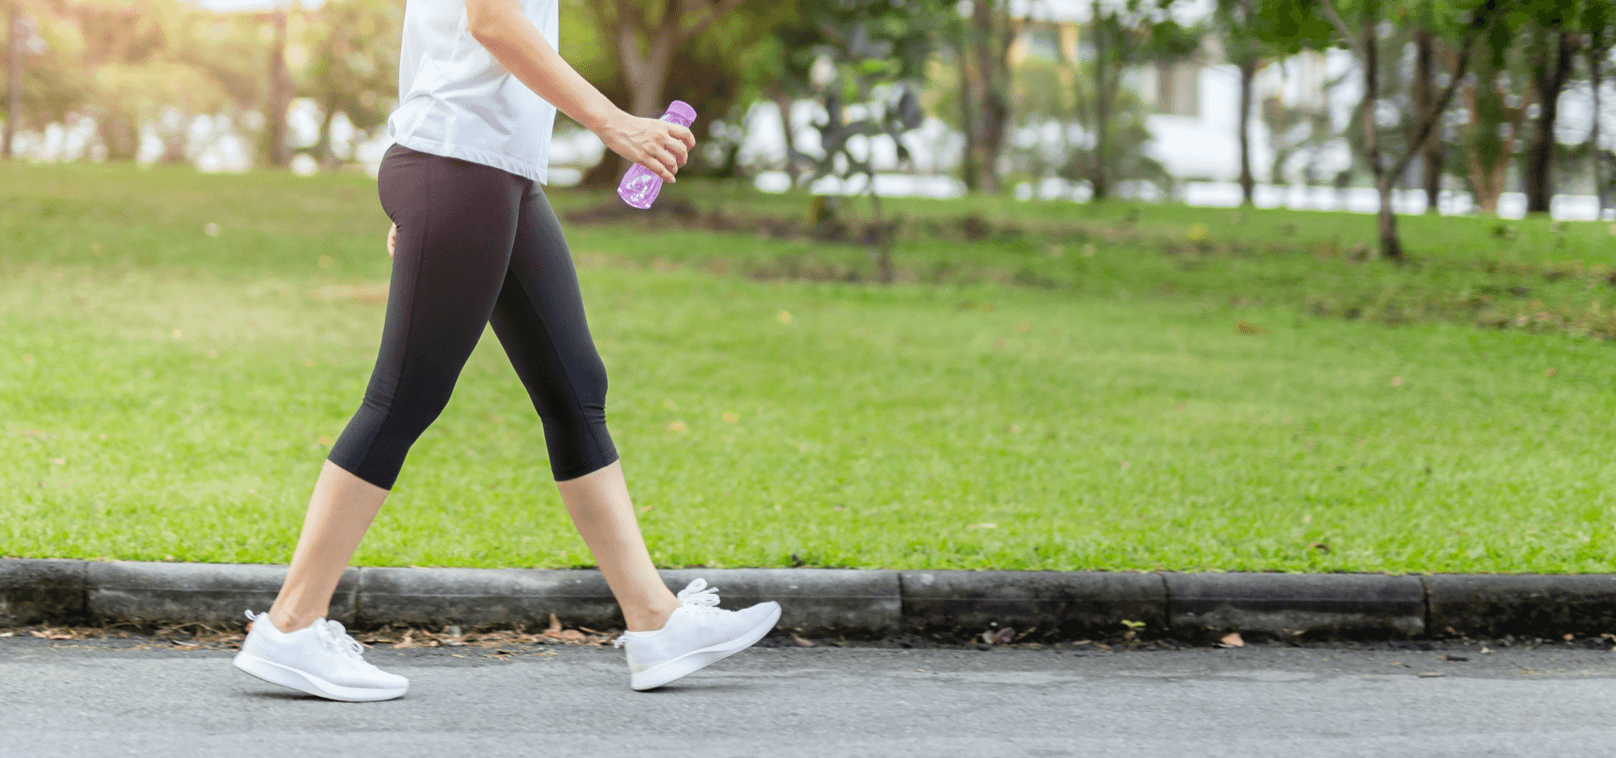 Woman completes an iFit walking workout